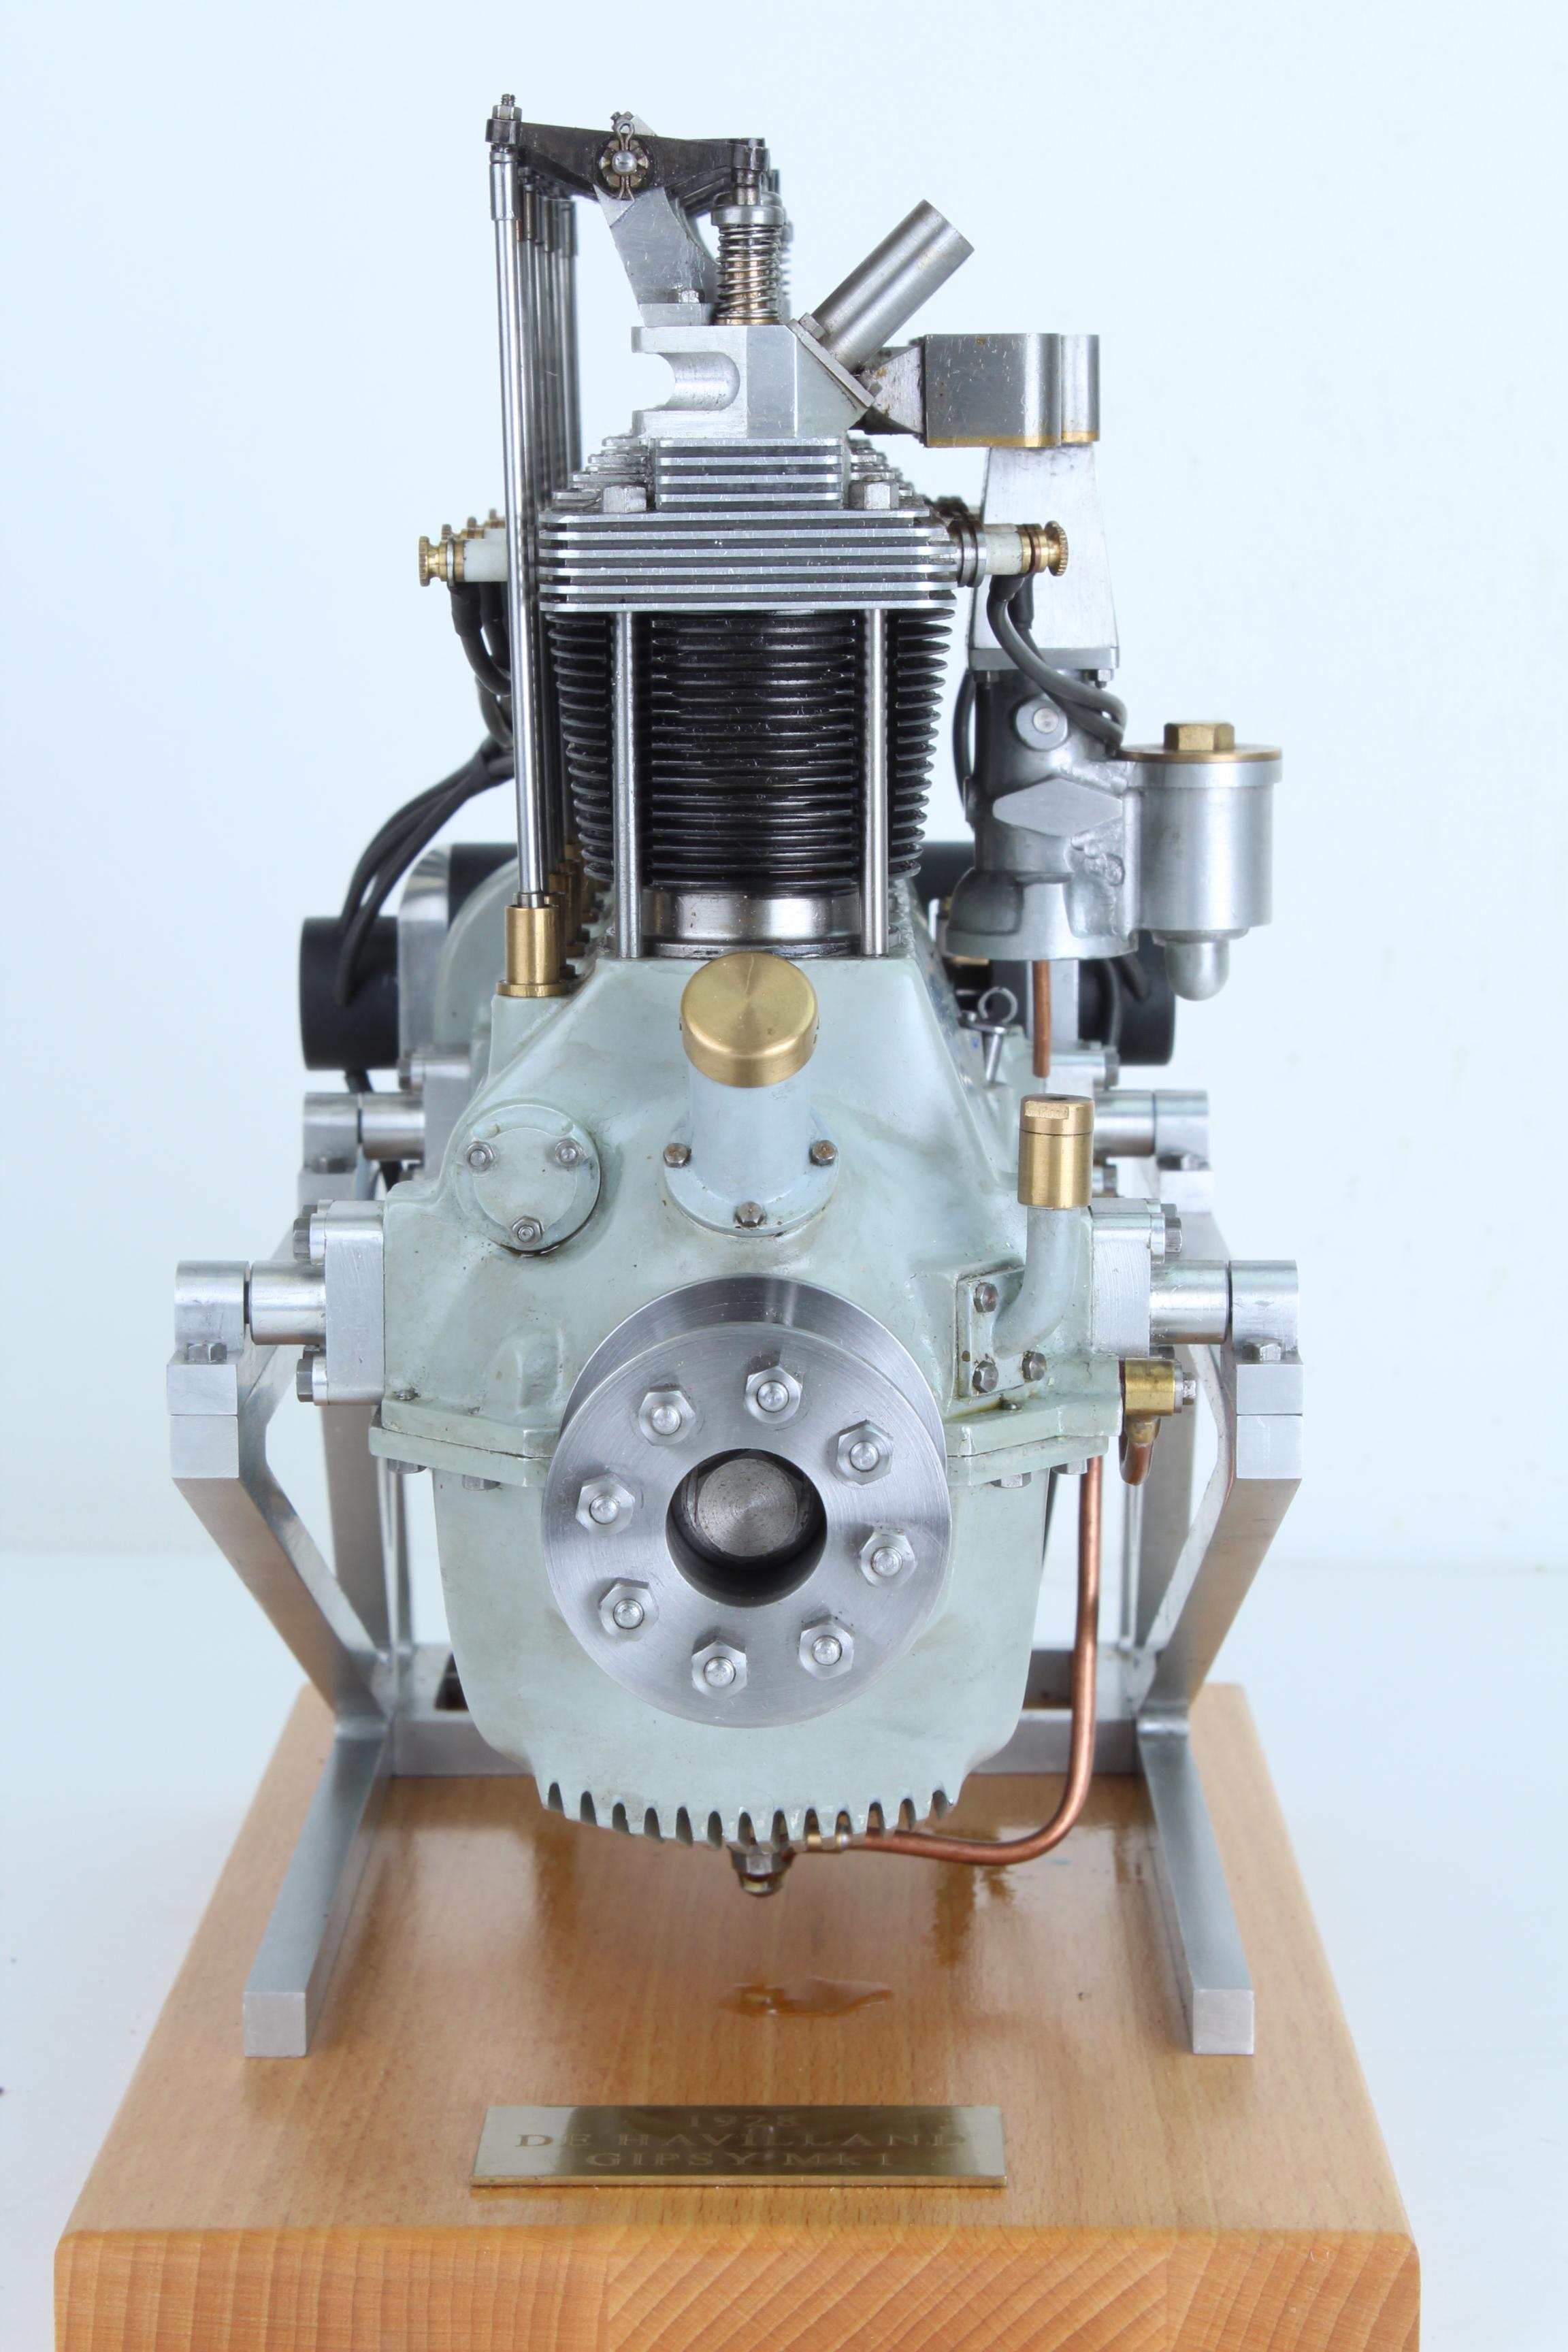 Quarter scale De Havilland Gysy Mk1 engine